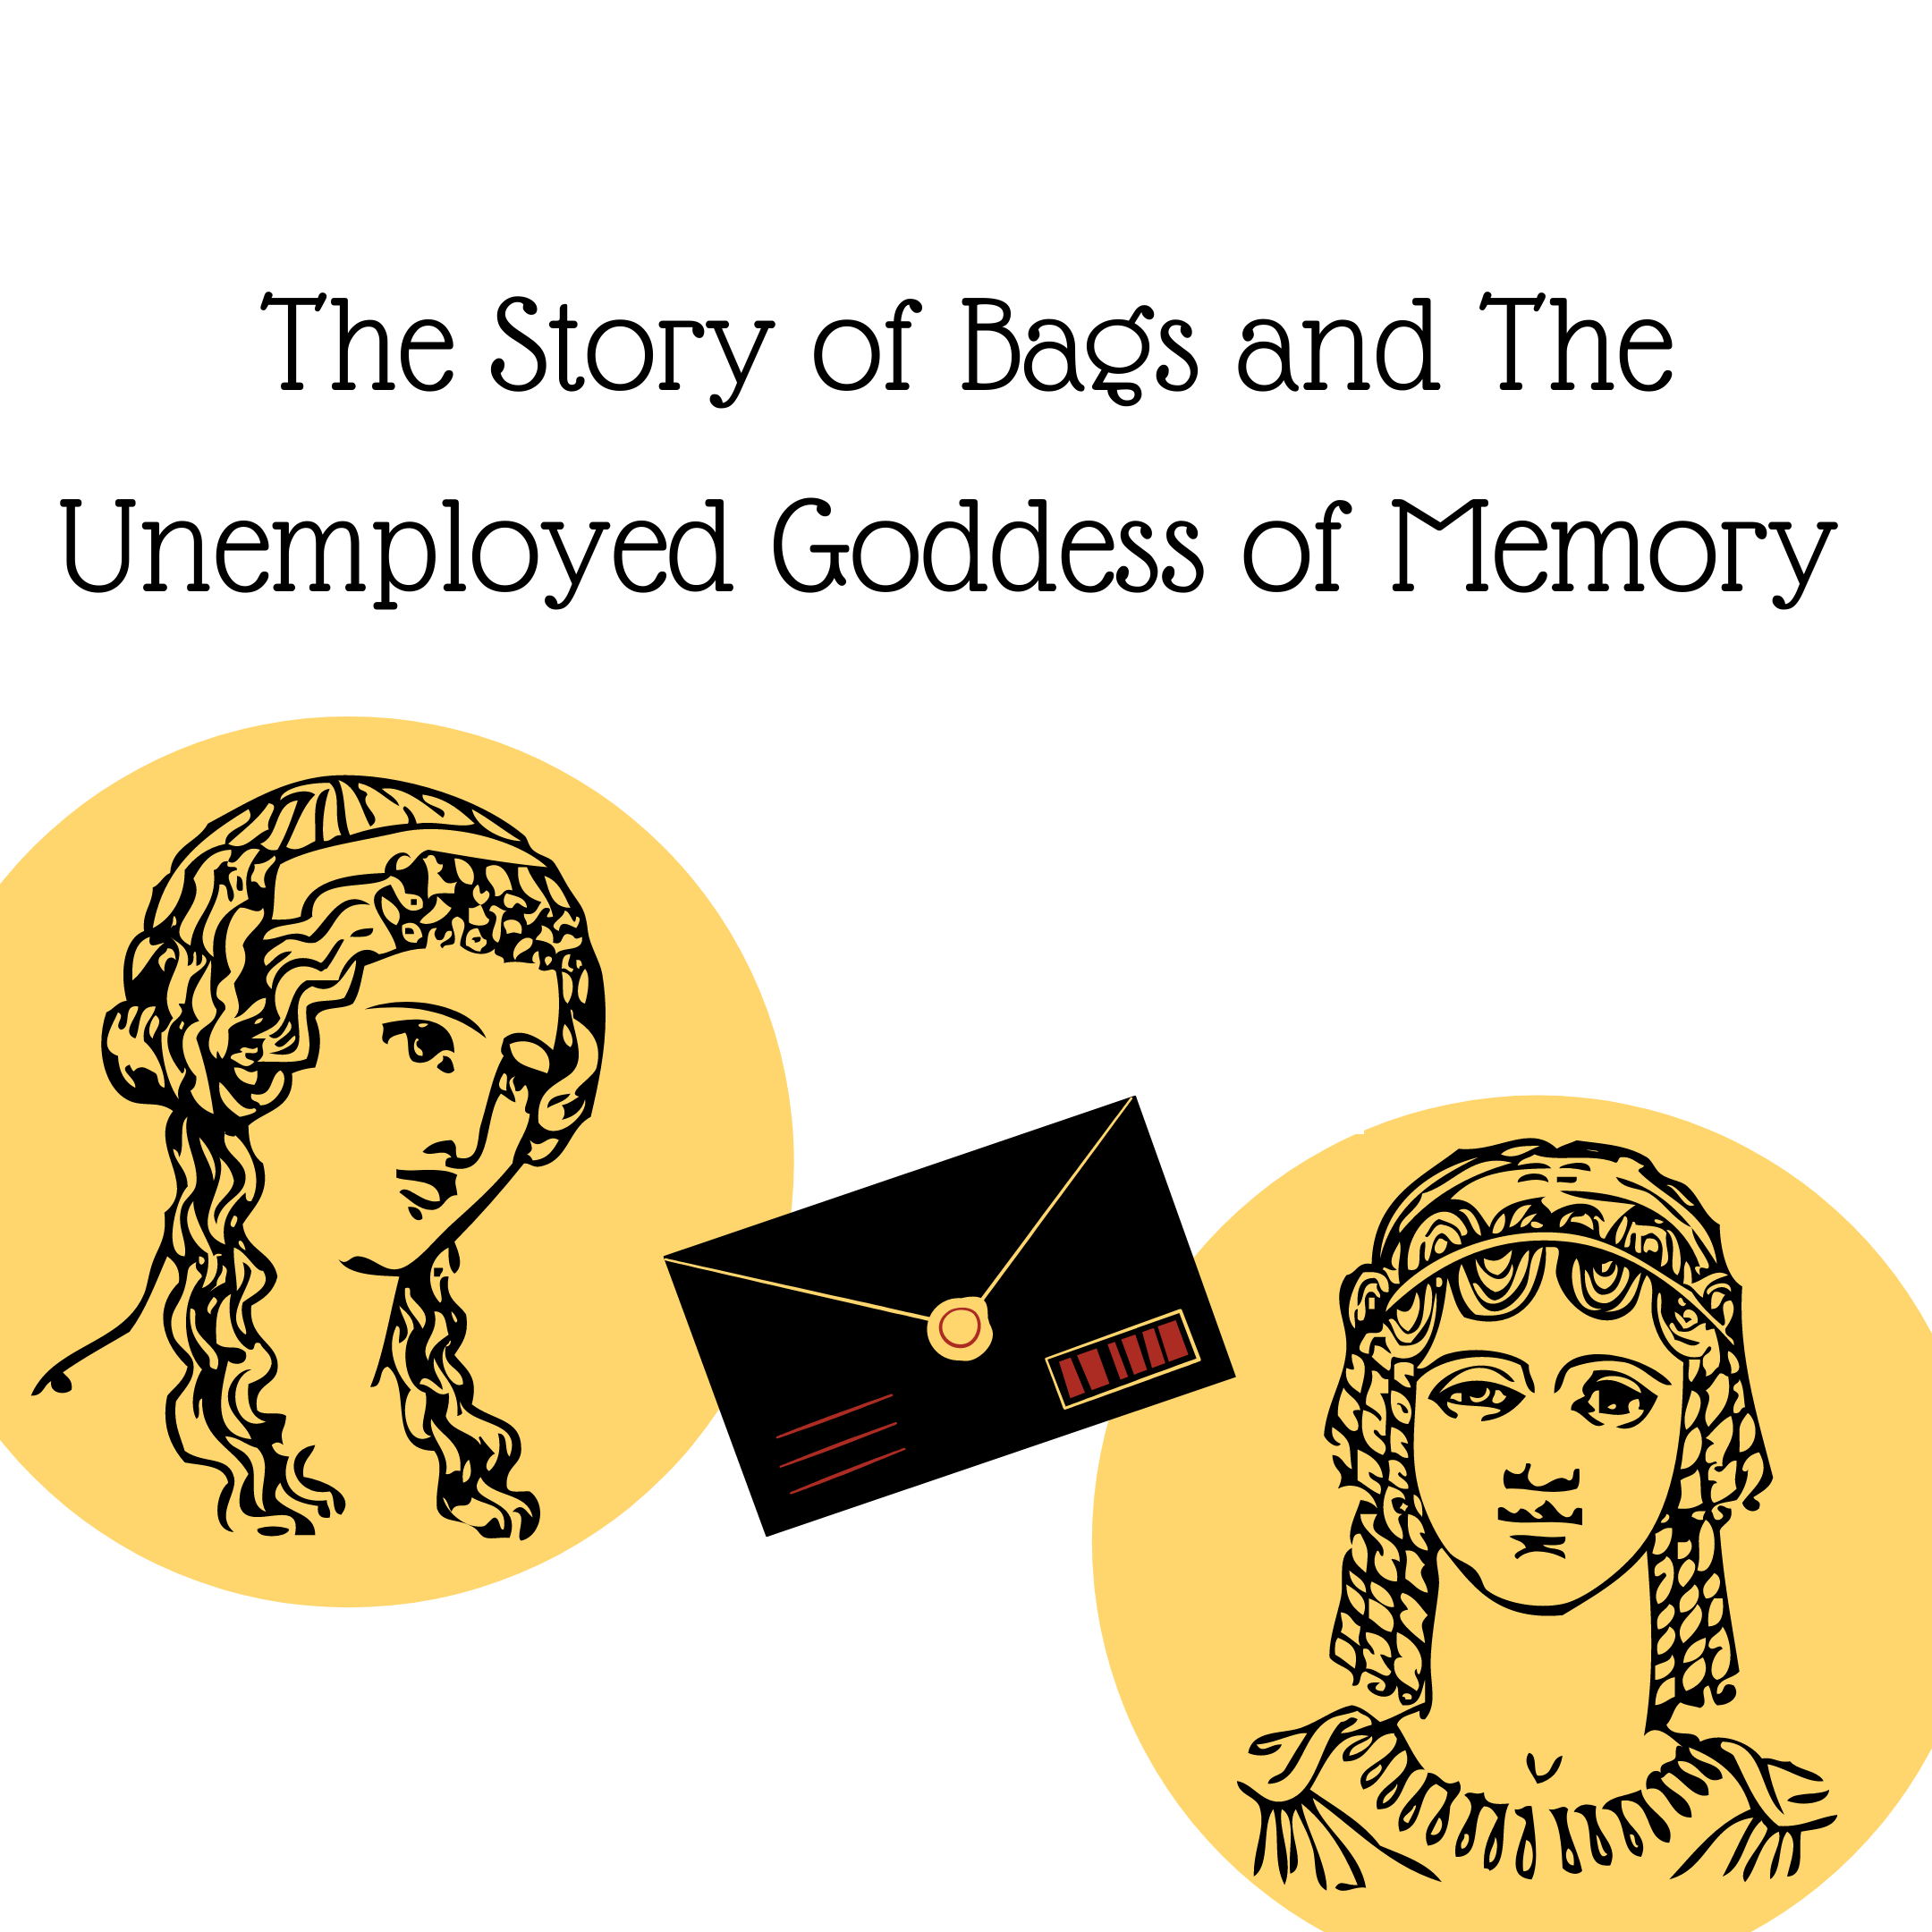 The Story of Bags and The Unemployed Goddess of Memory